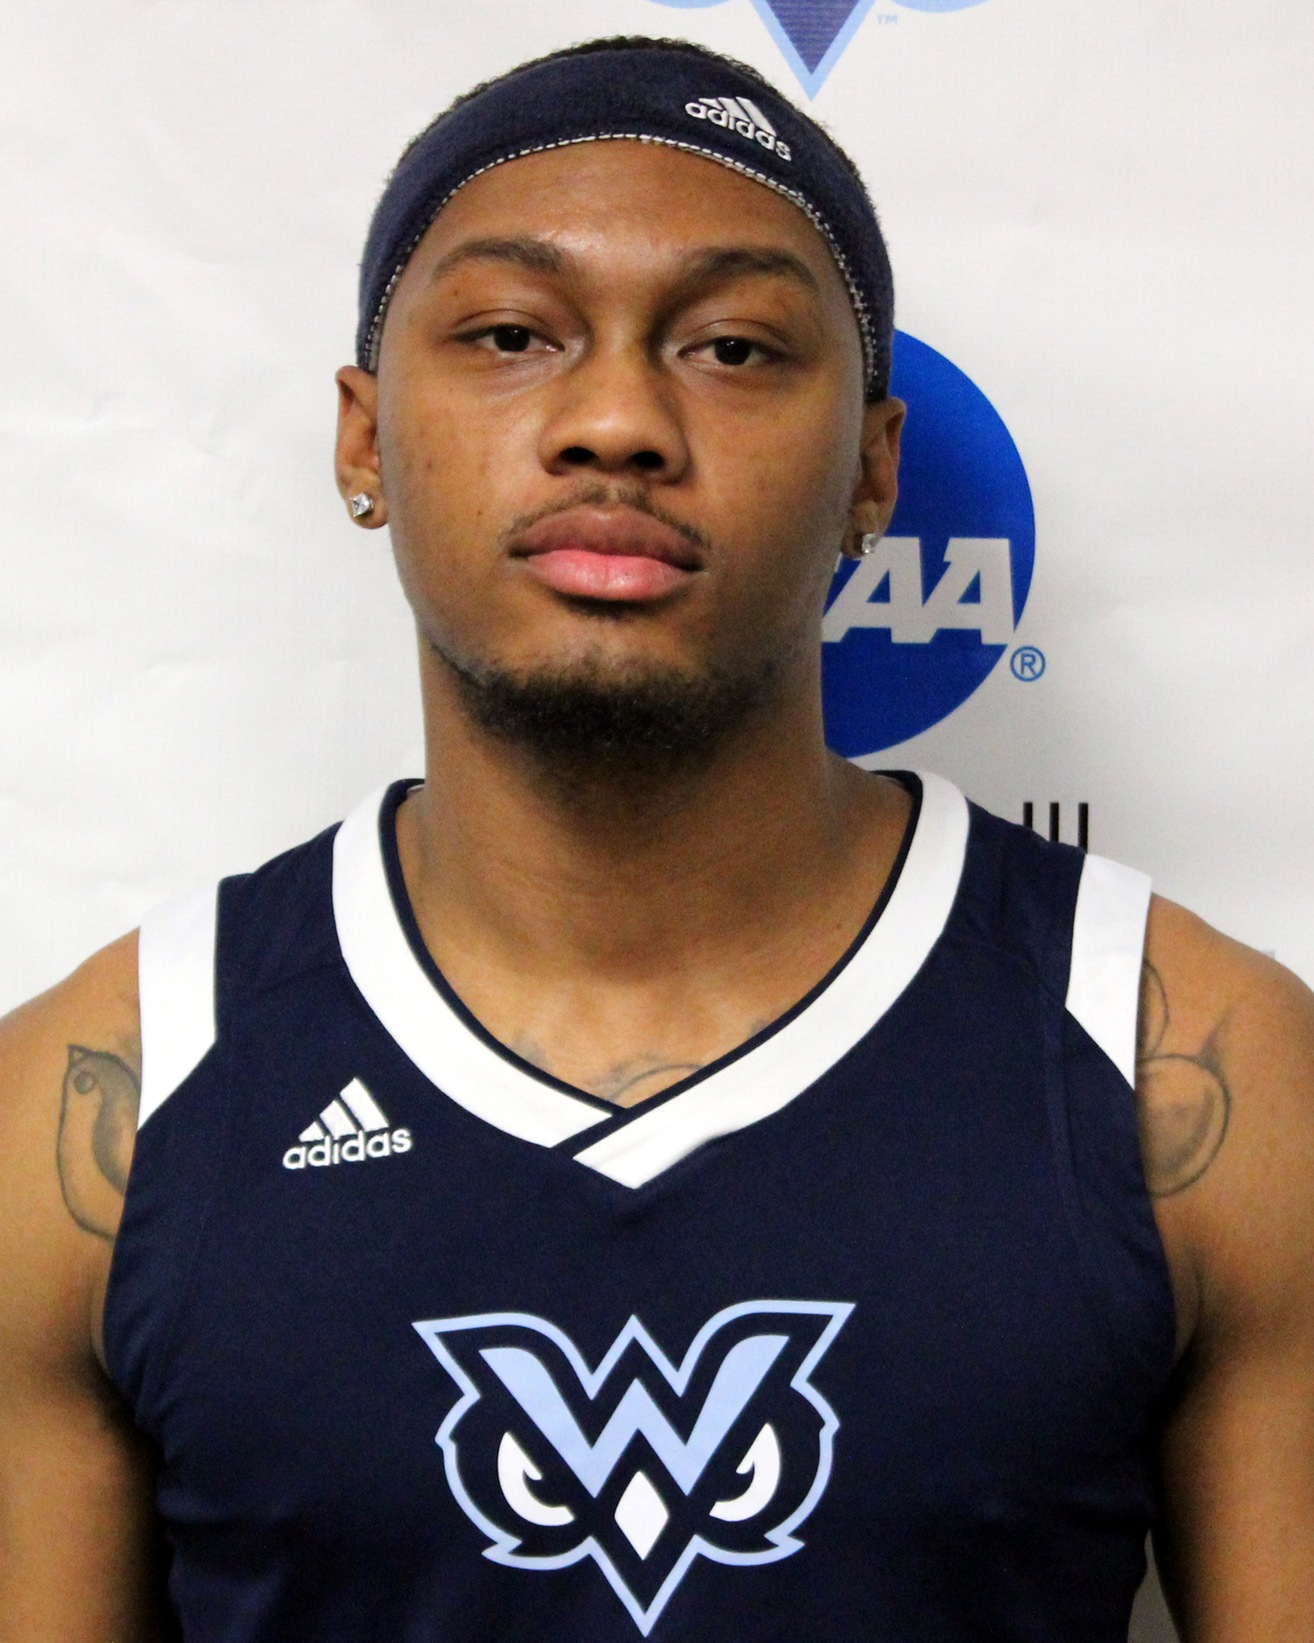 Austin Taylor 2019 20 Men S Basketball Mississippi University For Women New free austin taylor photos added every day. austin taylor 2019 20 men s